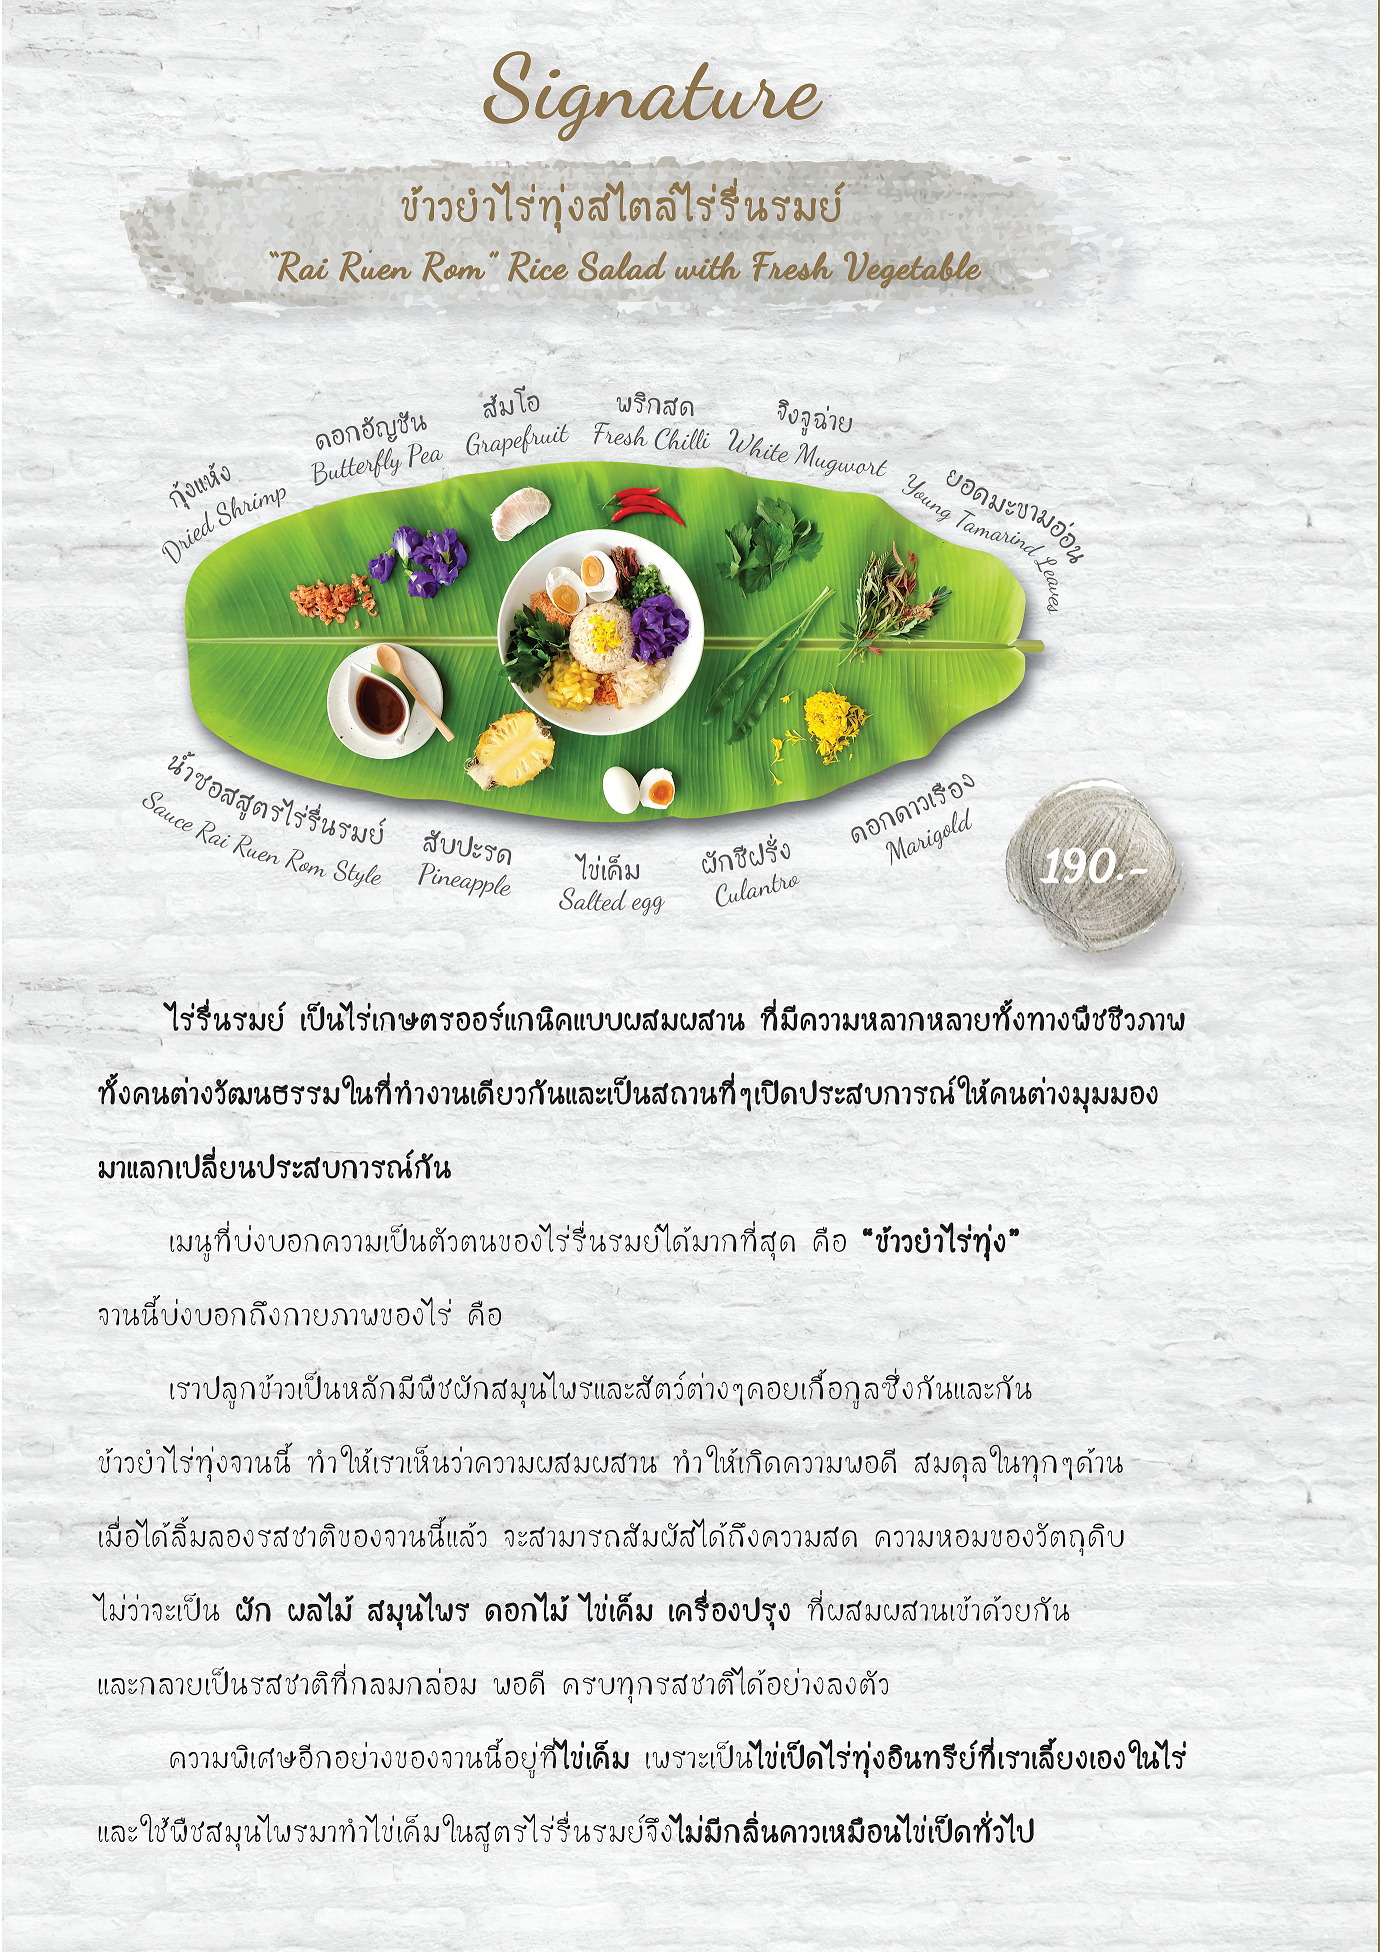 _กับข้าวบ้าน.Final.Menu.List&Signature.30.11.59_17 page_Page_02.png